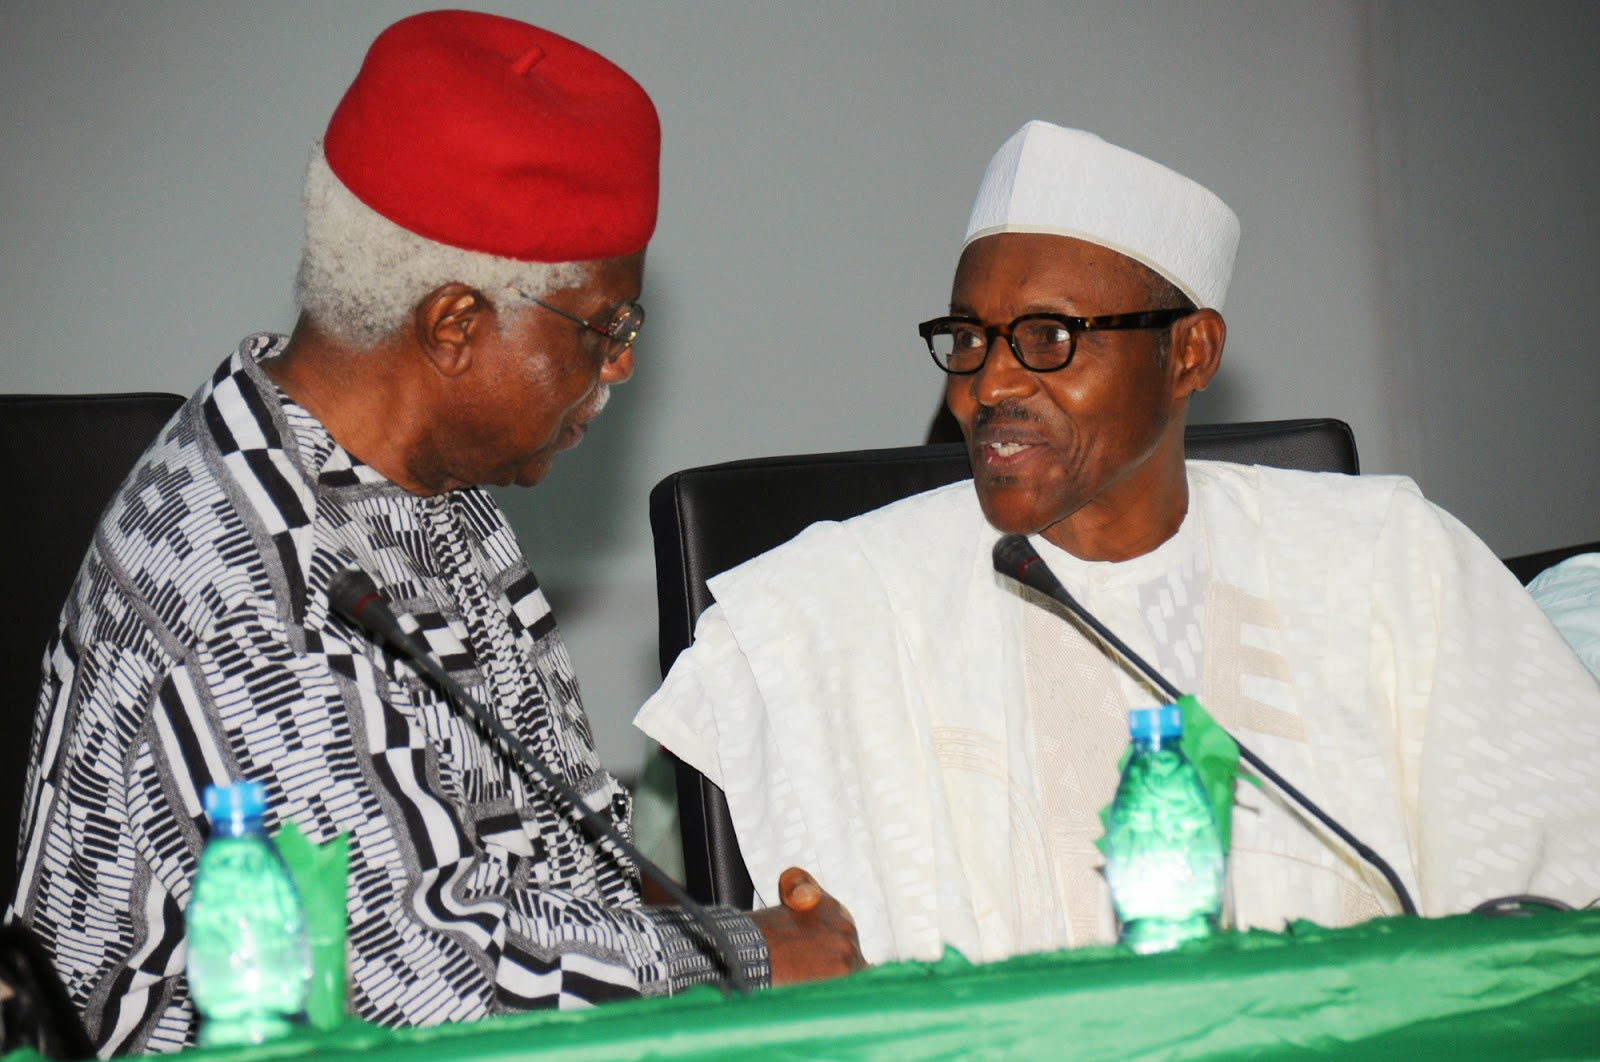 Buhari 32 years ago put Ekwueme into prison and 32 years after he died under his government